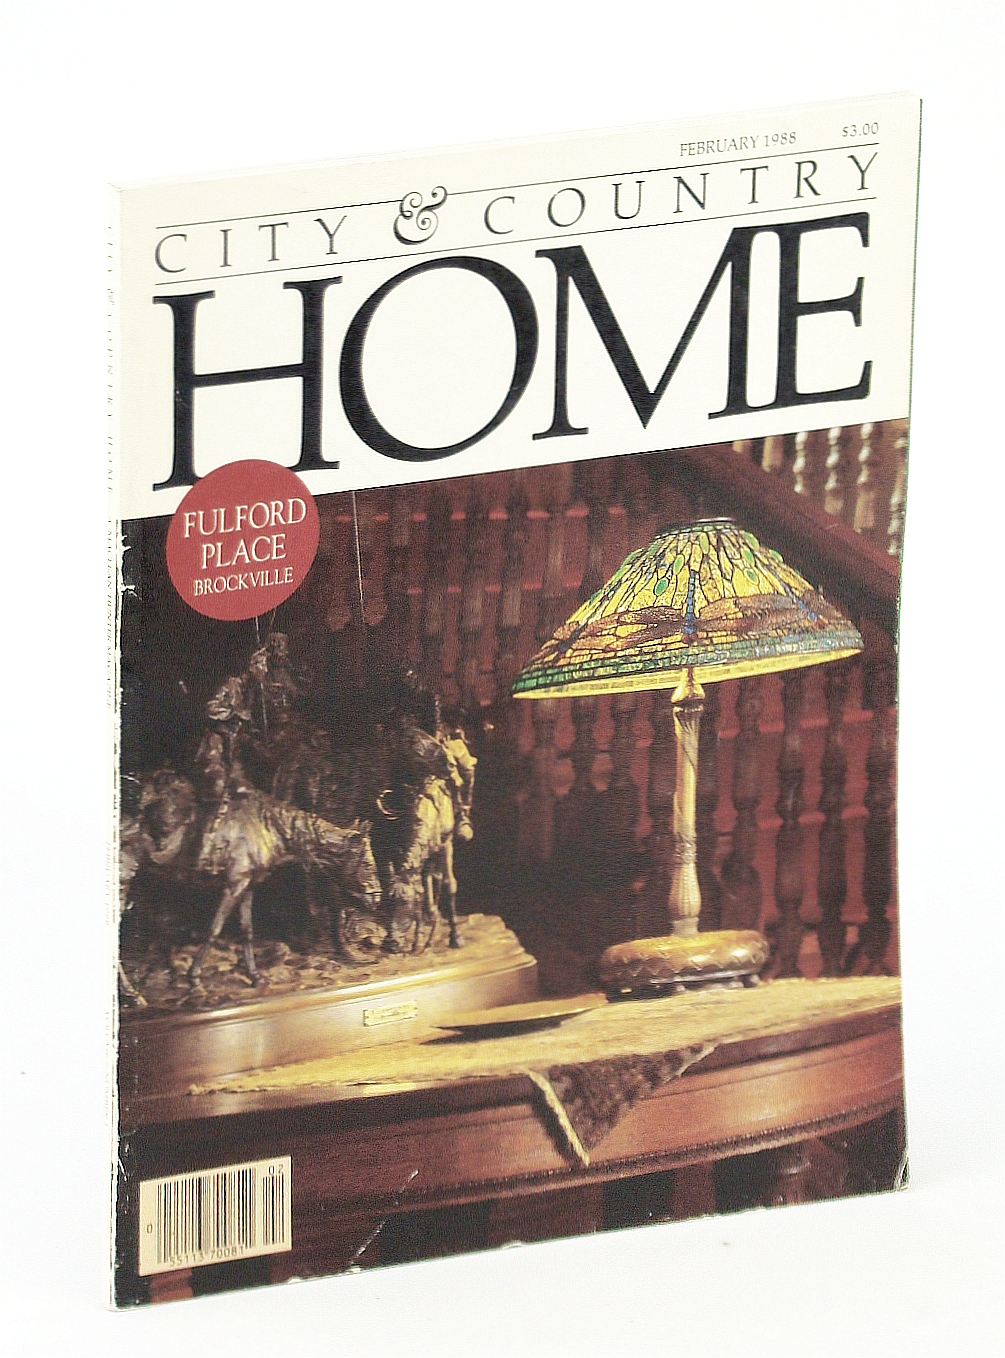 Image for City & Country Home Magazine, February [Feb.] 1988 - Fulford Place, Brockville